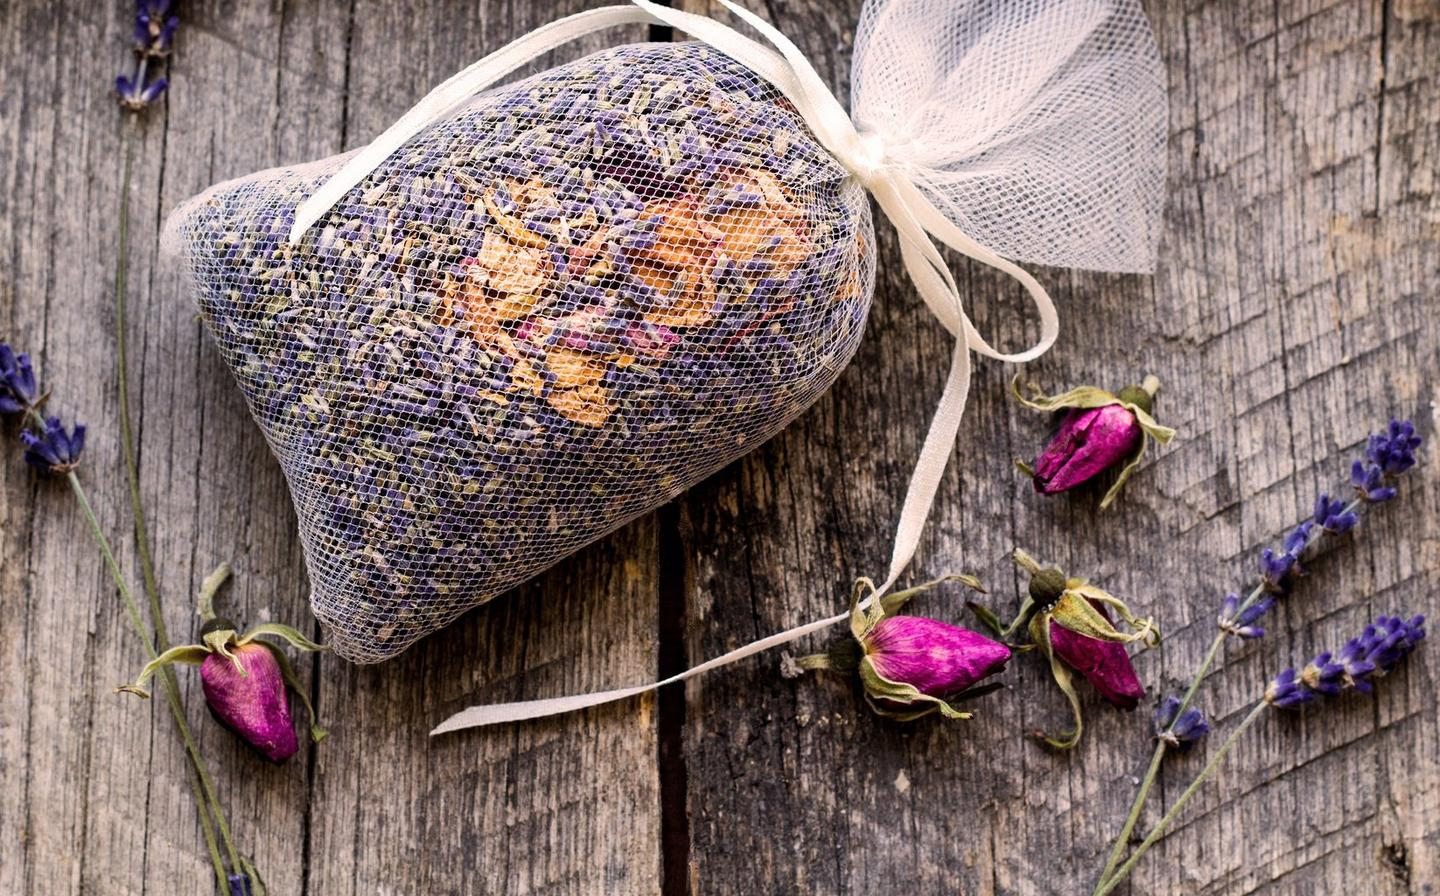 Beautifully wrapped lavender bags, which are ideal for keeping moths away from knitwear when stored in drawers